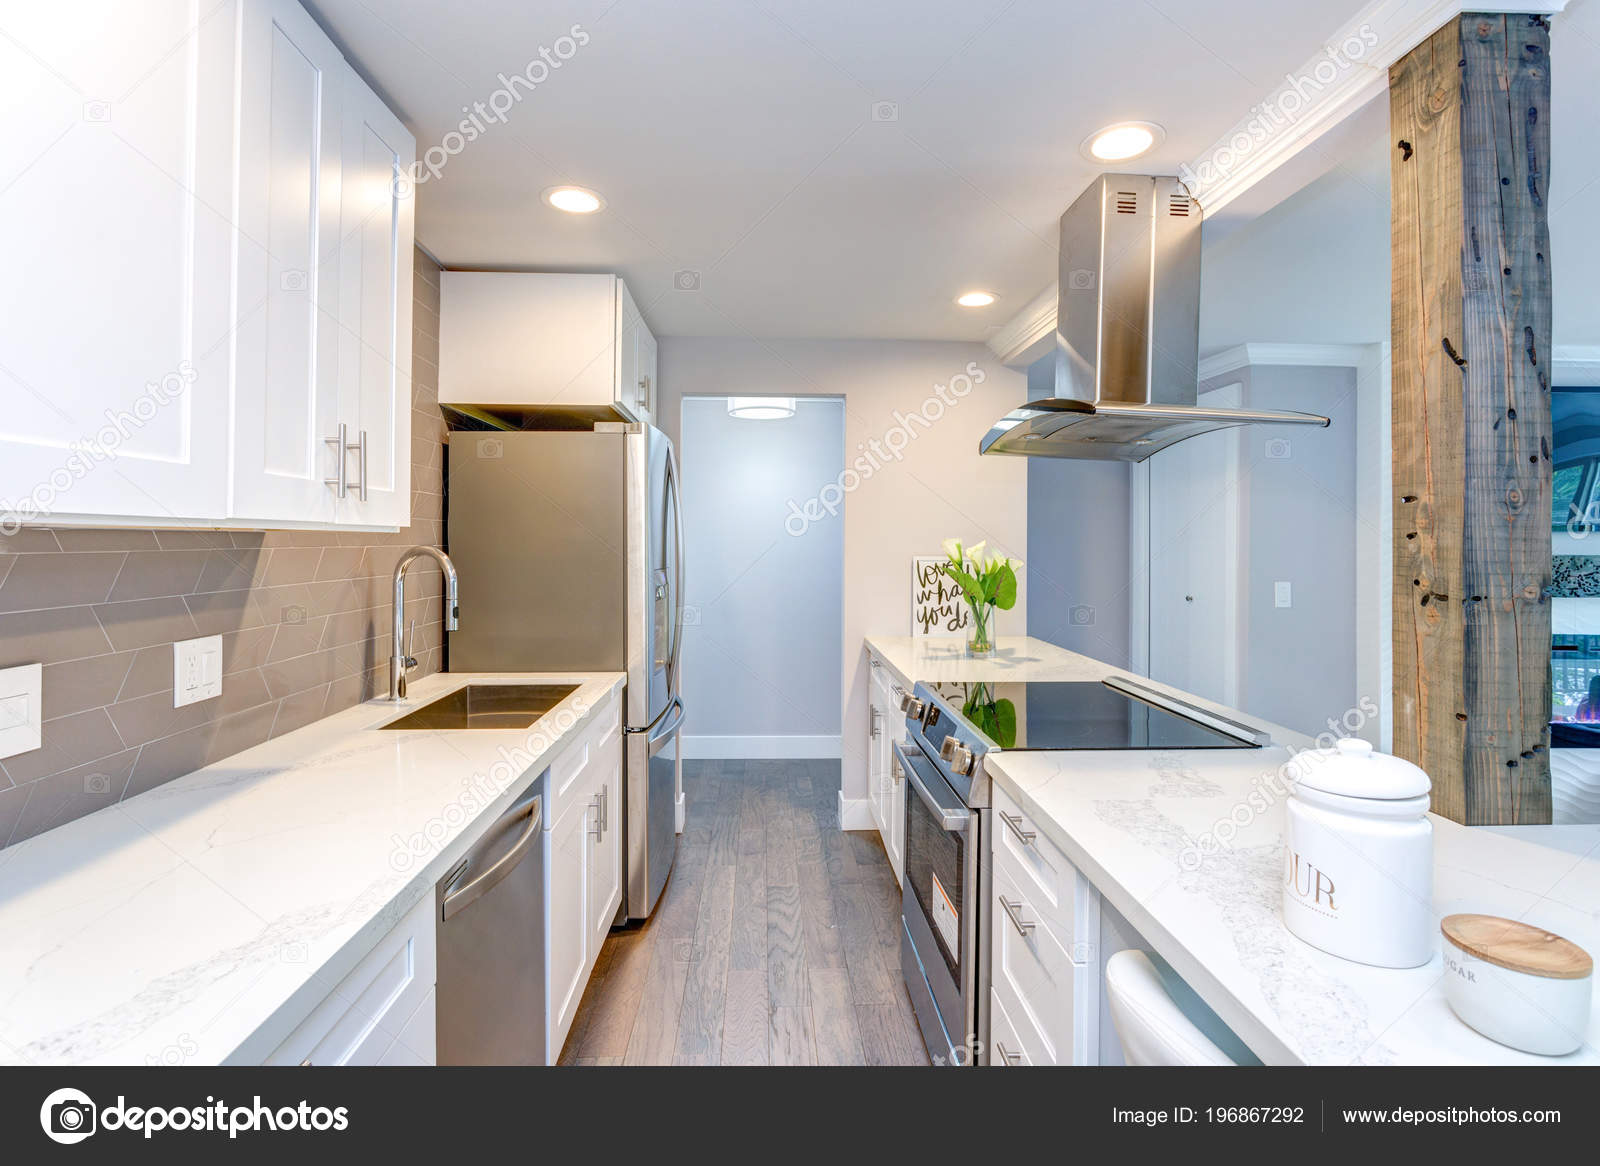 White Small Kitchen Stainless Steel Appliances Modern ...